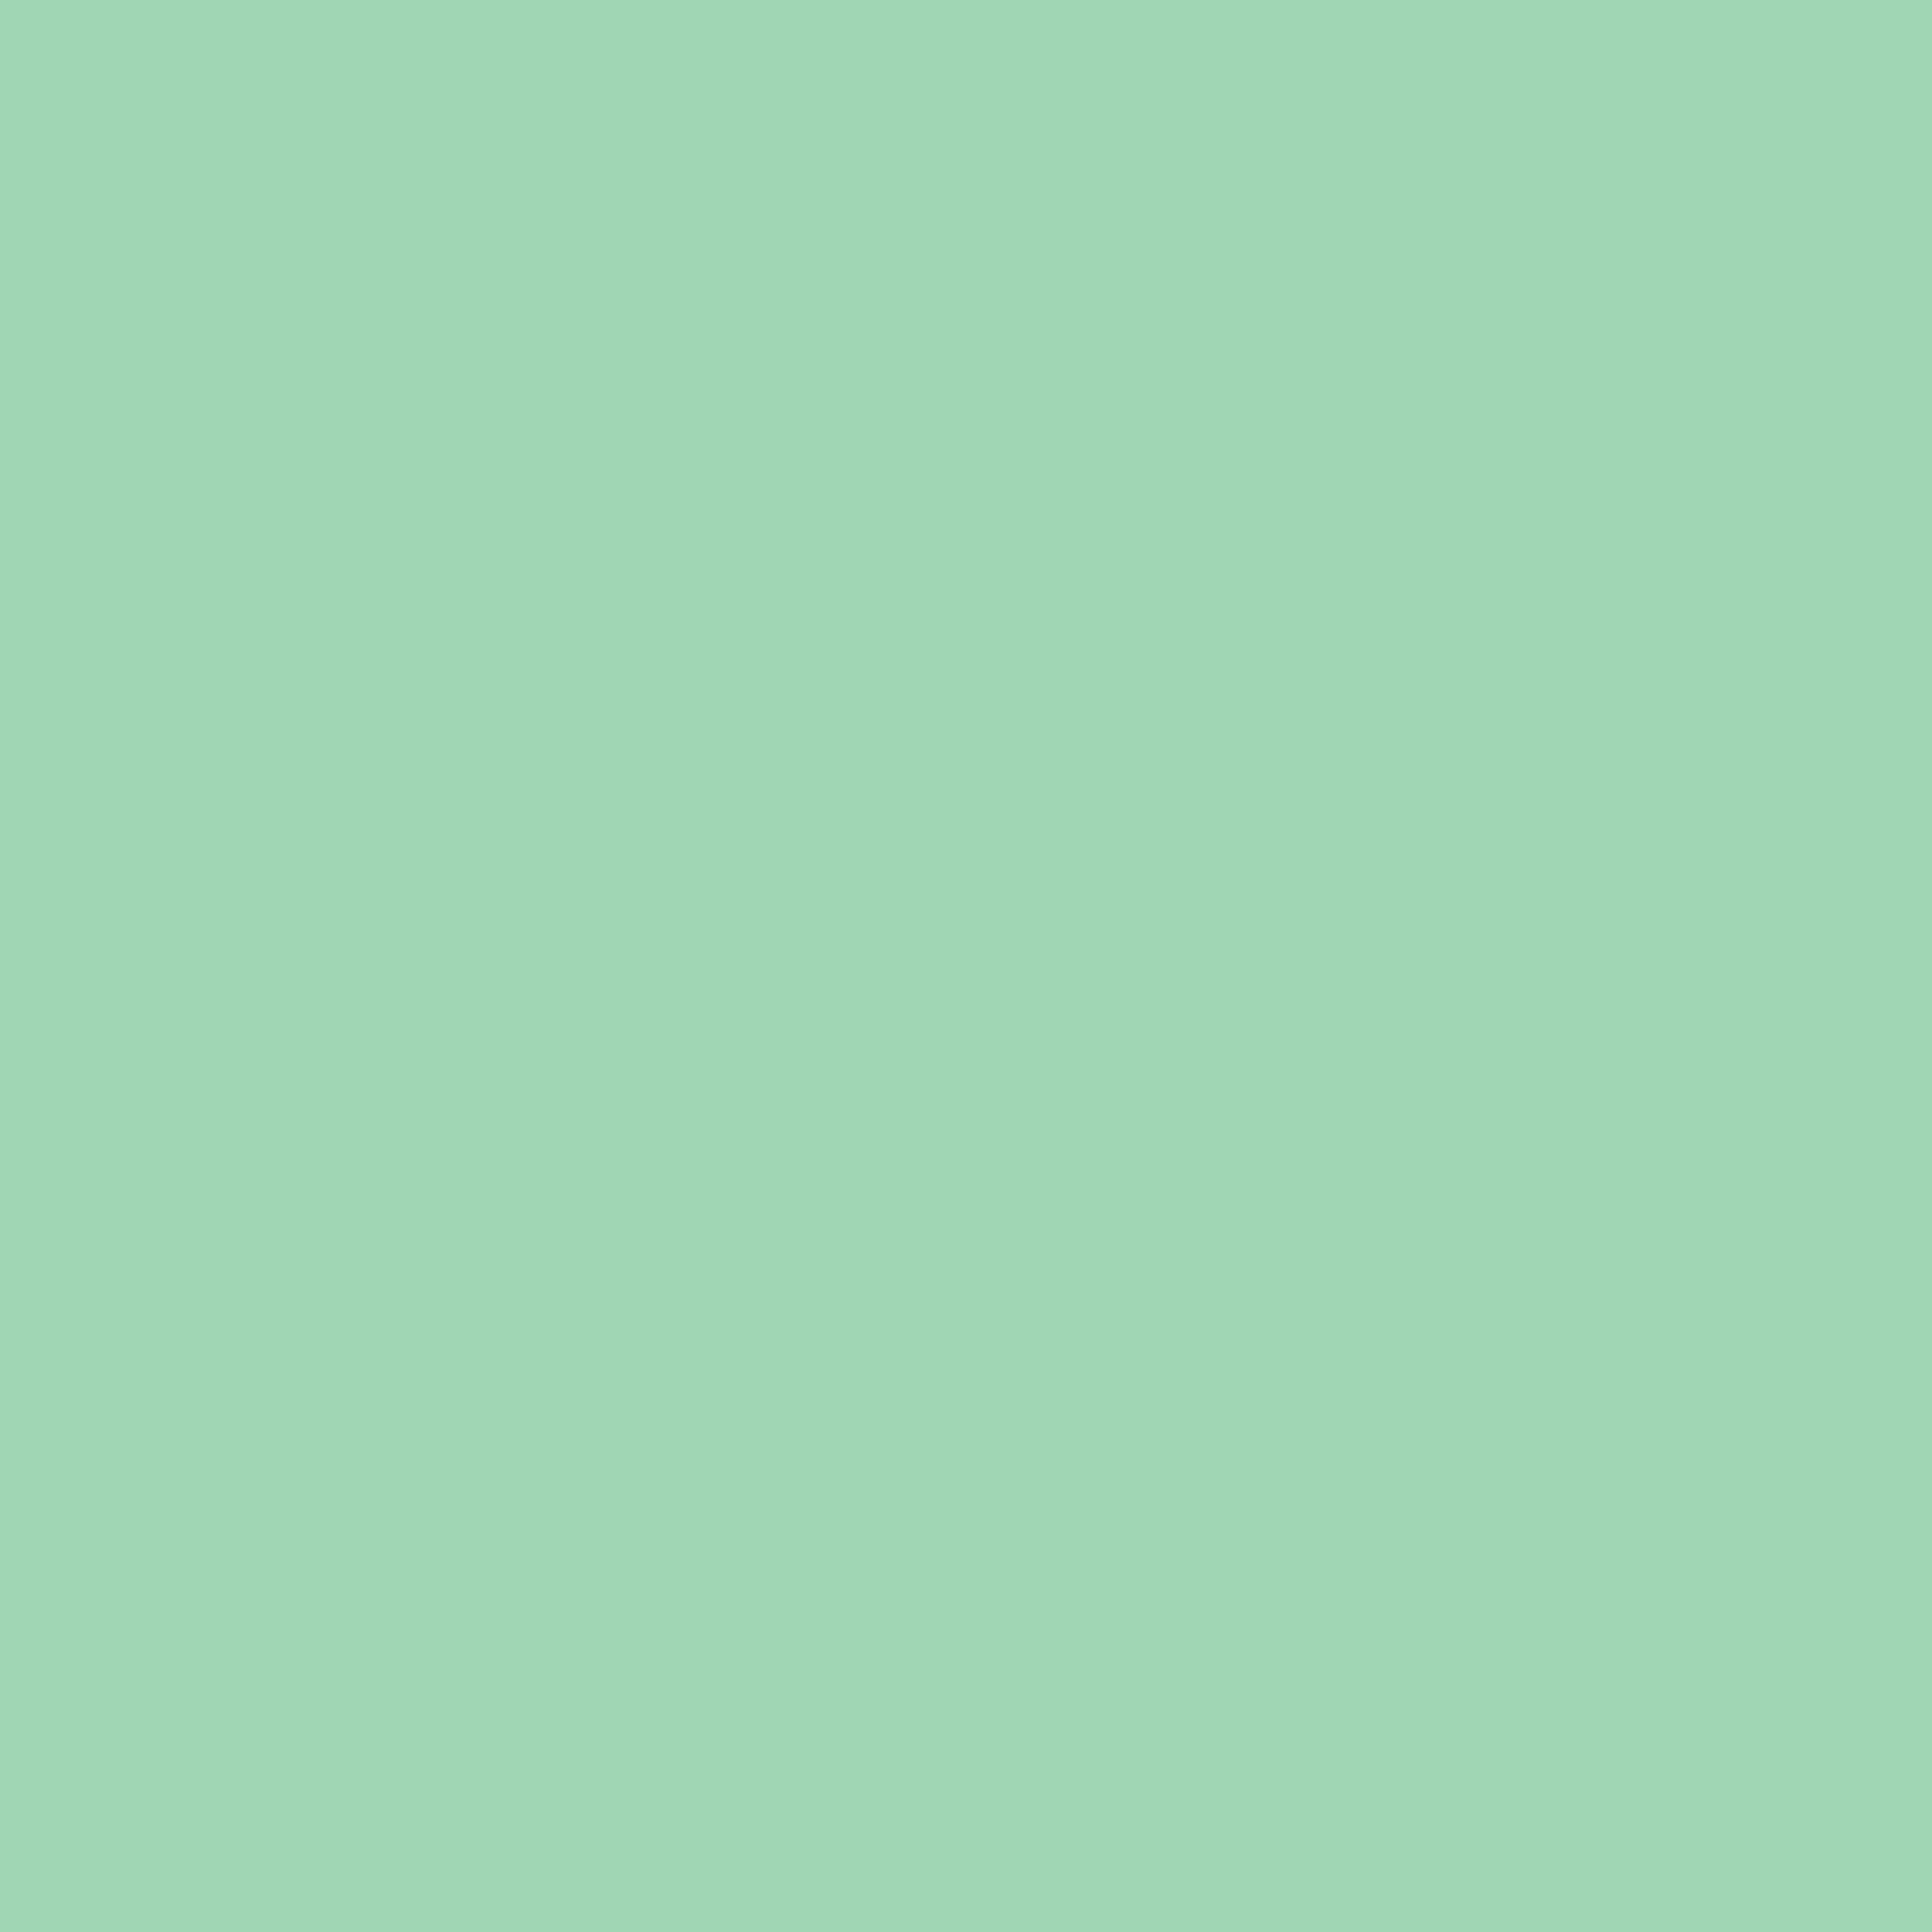 2732x2732 Turquoise Green Solid Color Background